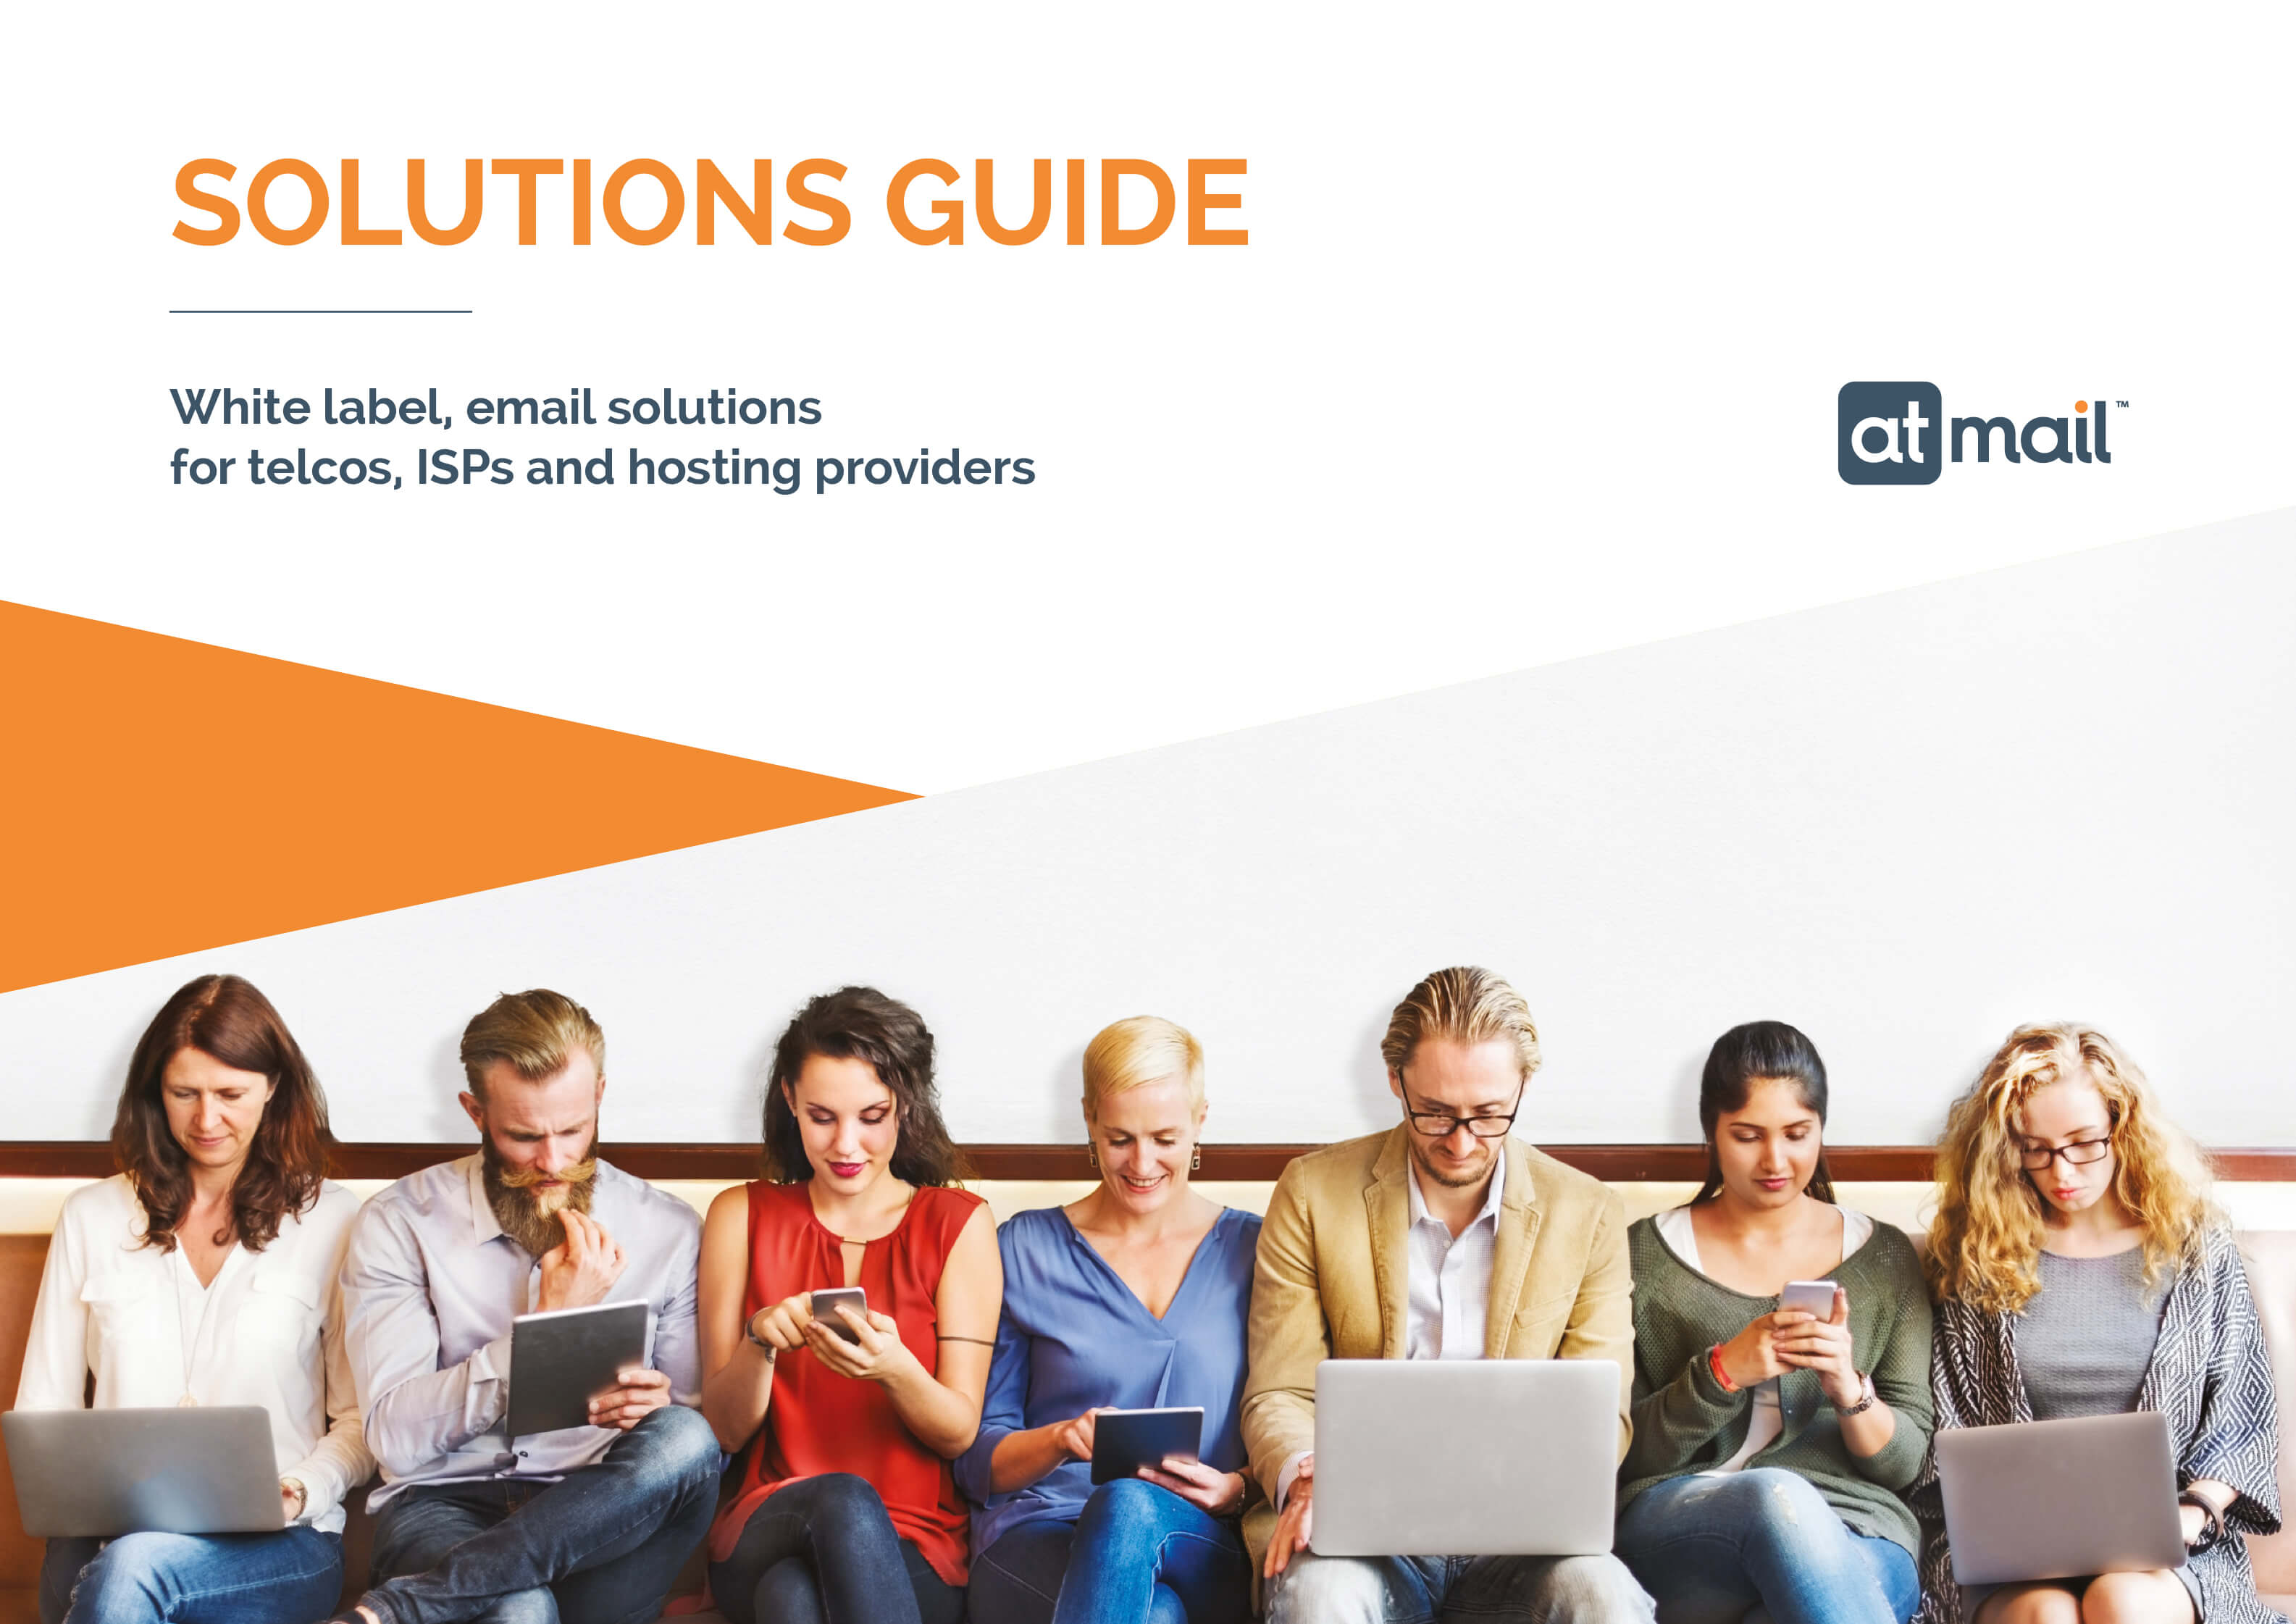 atmail Solutions Guide - atmail email experts - email for telcos and service providers - telco email - email for telecoms